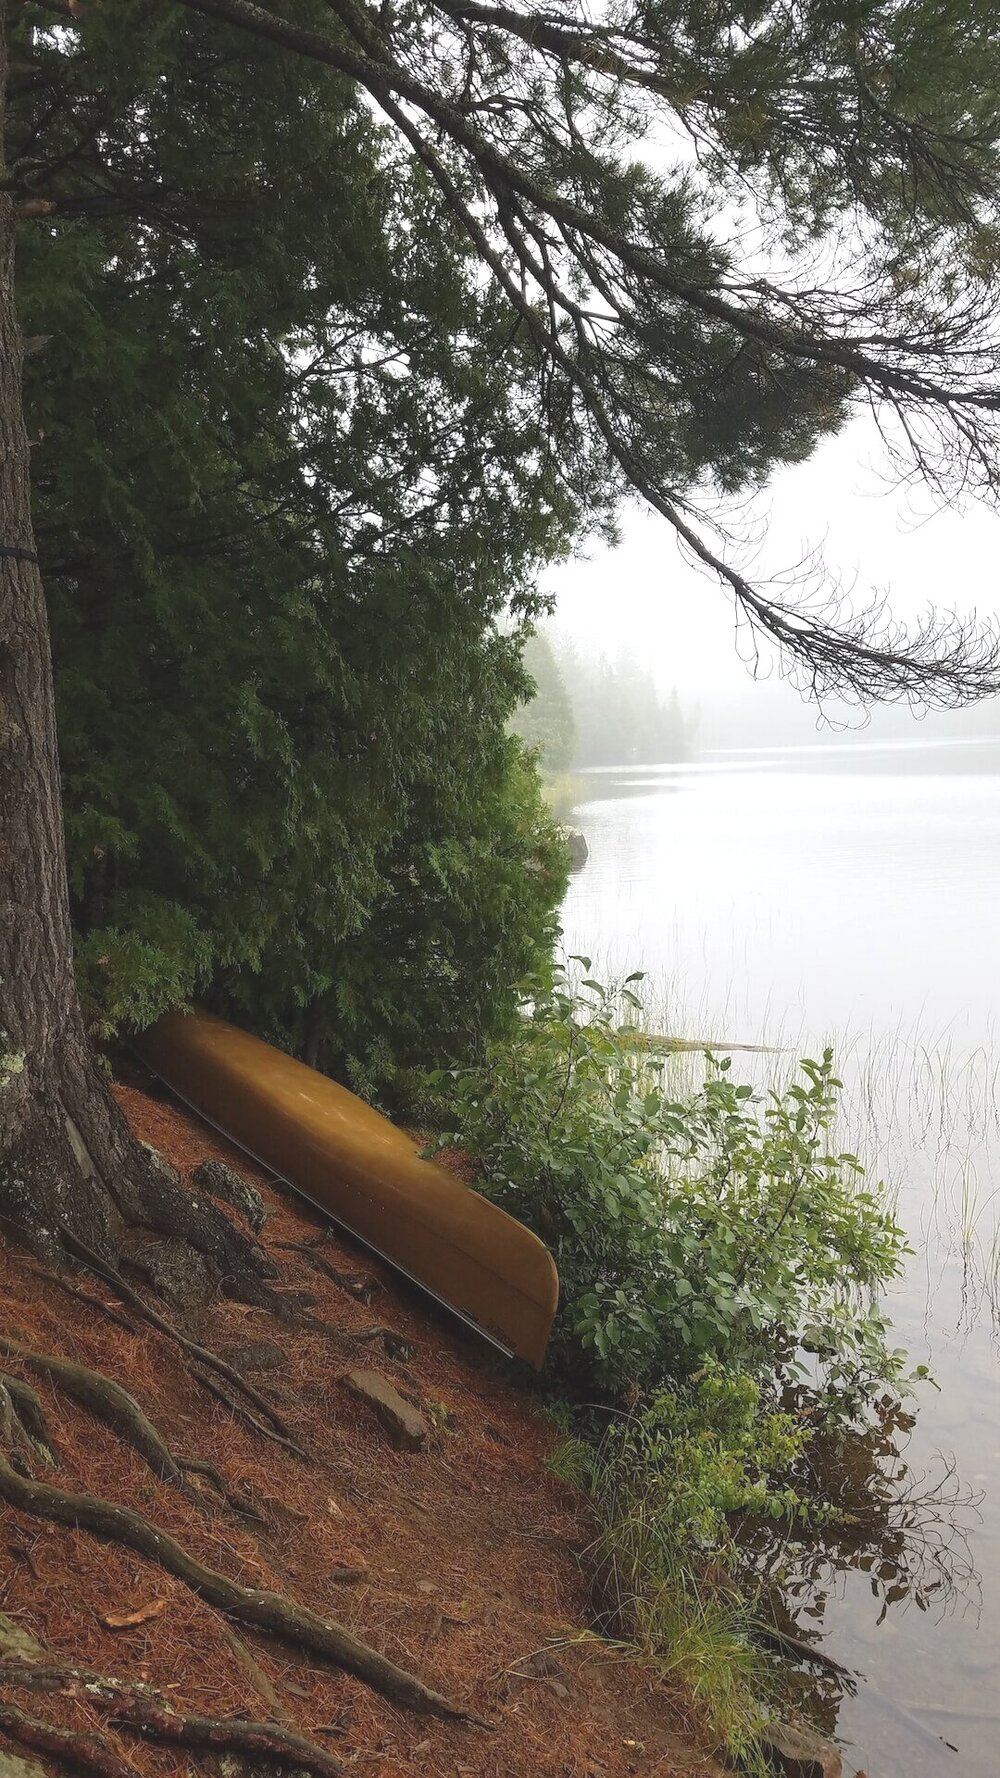 Canoe by the water in the BWCA